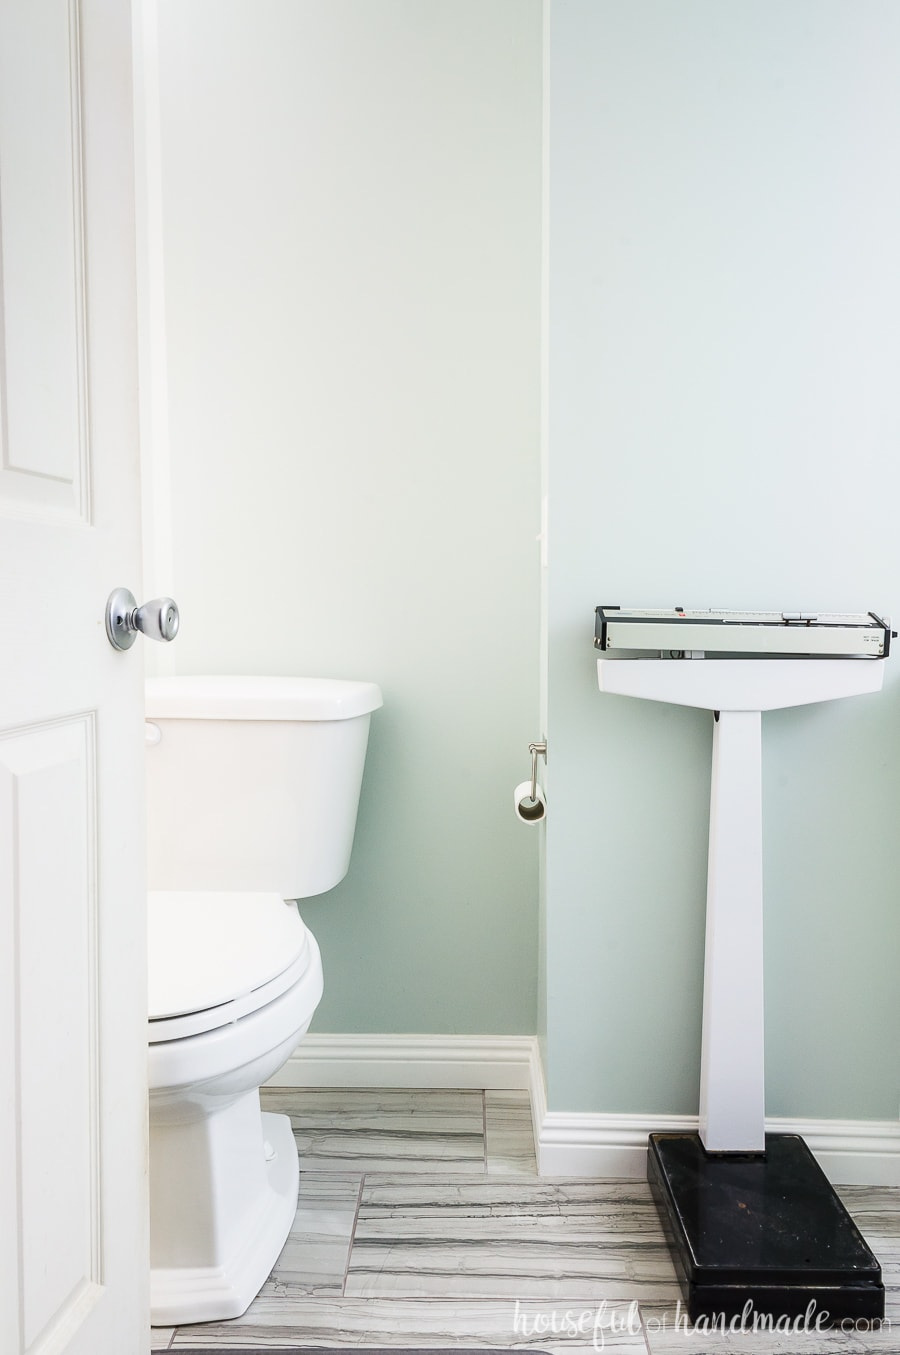 Add charm to the master bathroom retreat with an old doctors scale.